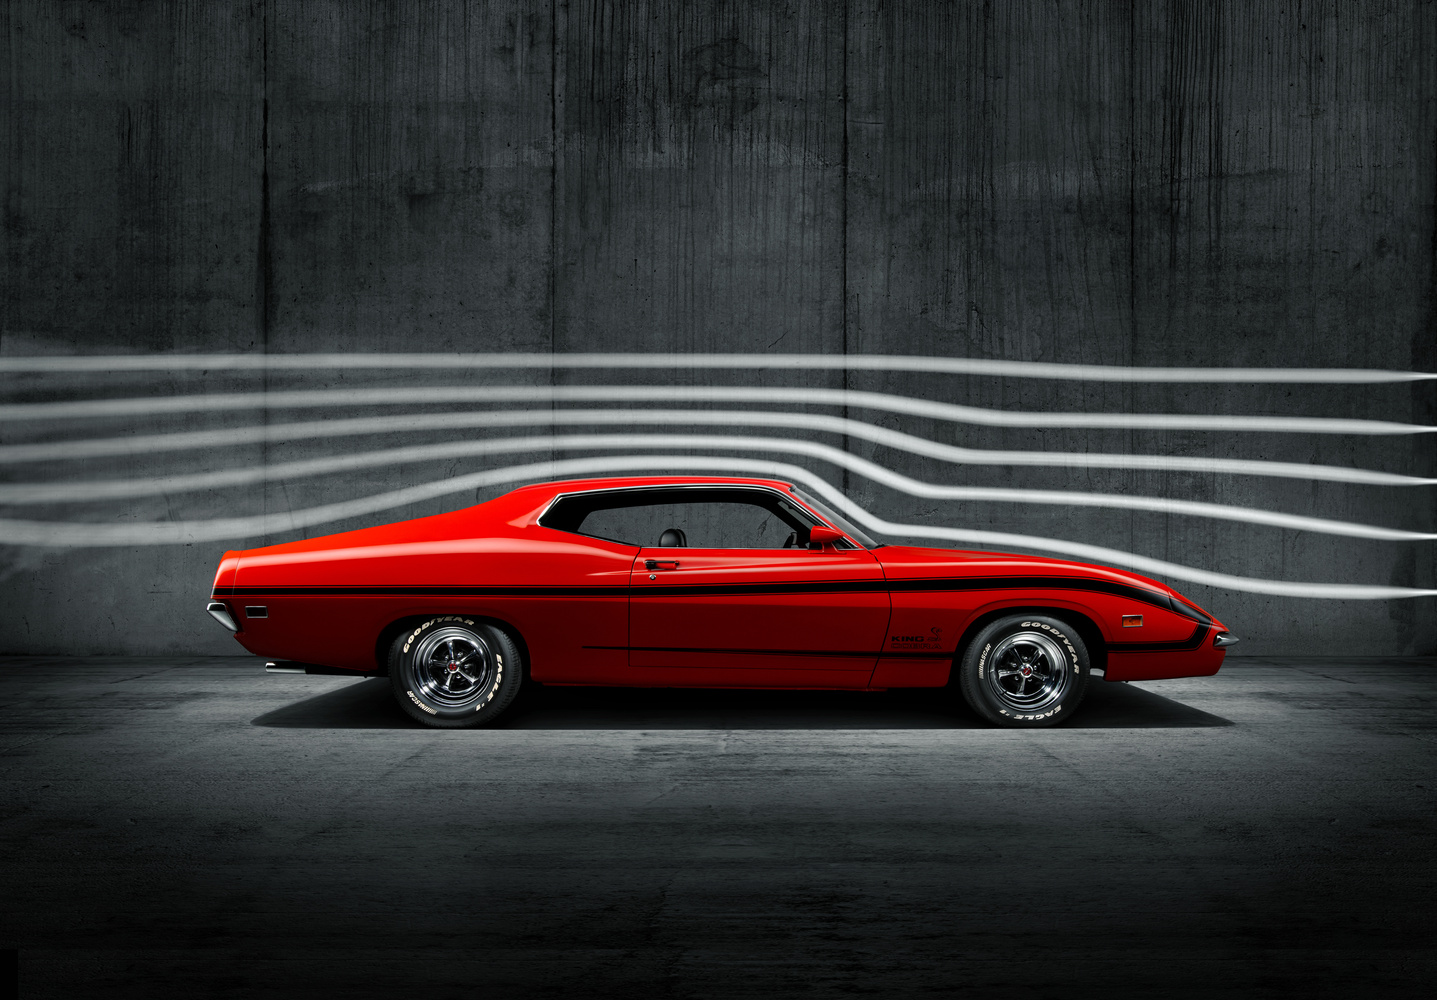 2018 Ford Torino >> 1970 Ford Torino King Cobra Prototype Photo Of The Day May 28th